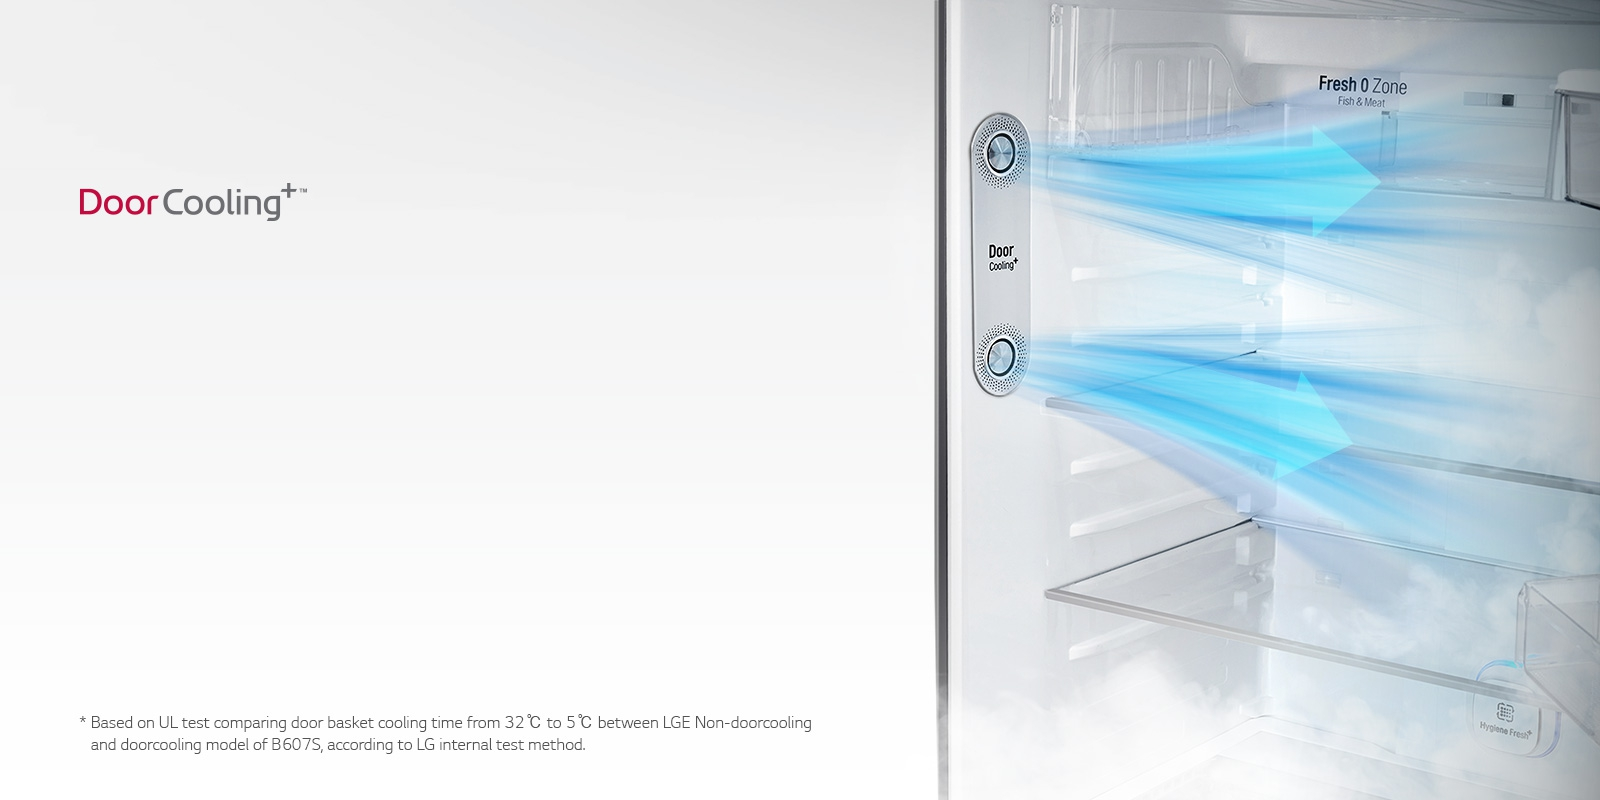 LG Freezer-on-Top Smart Refrigerator 22 cu ft Price in Pakistan ... 54313c5f4e7